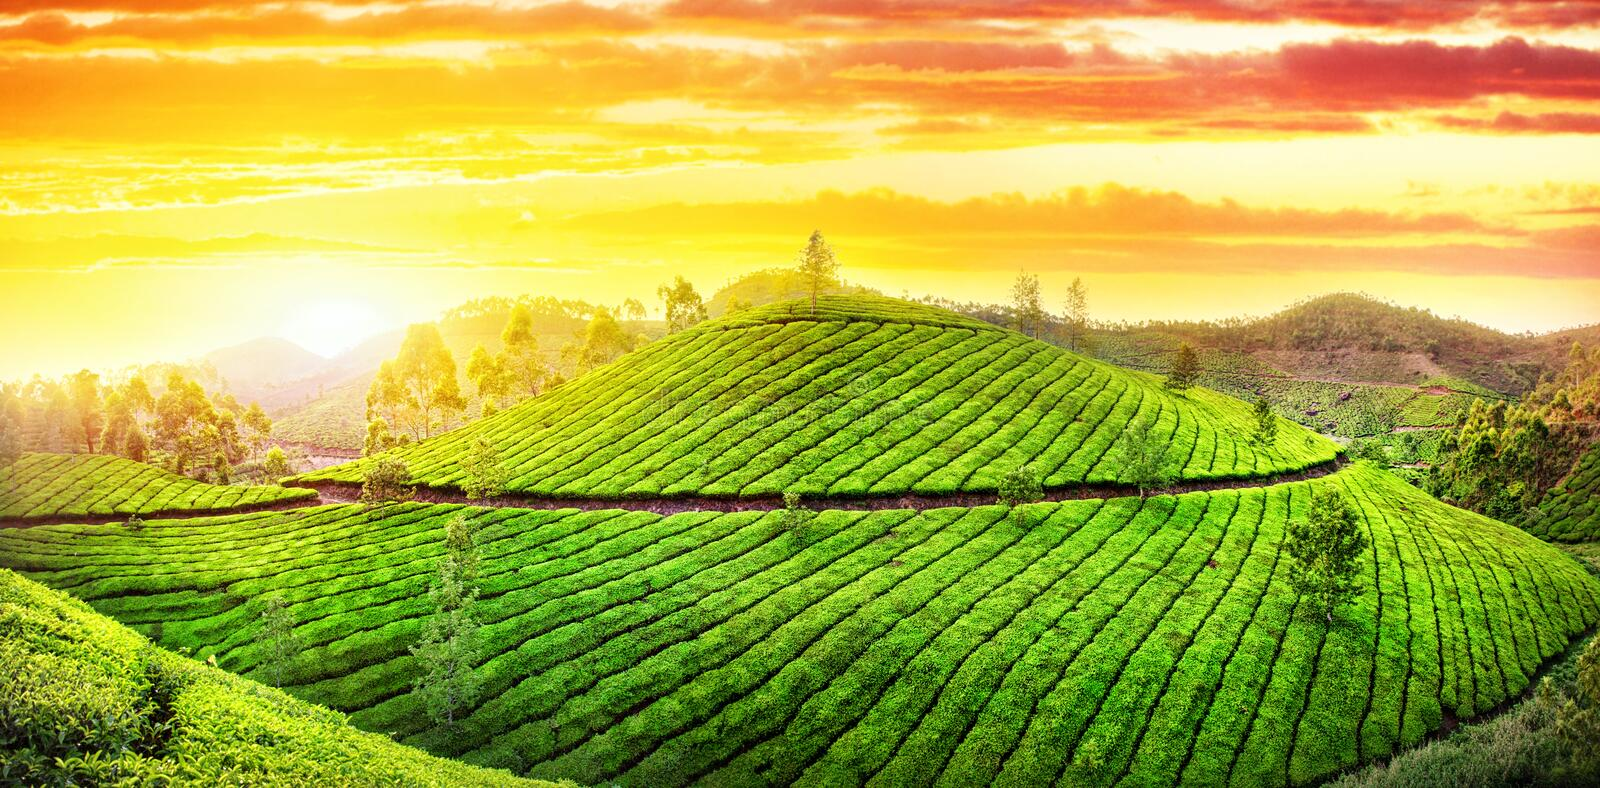 Tea plantations panorama. Panorama of Tea plantations hills at sunset sky in Munnar, Kerala, India royalty free stock photography